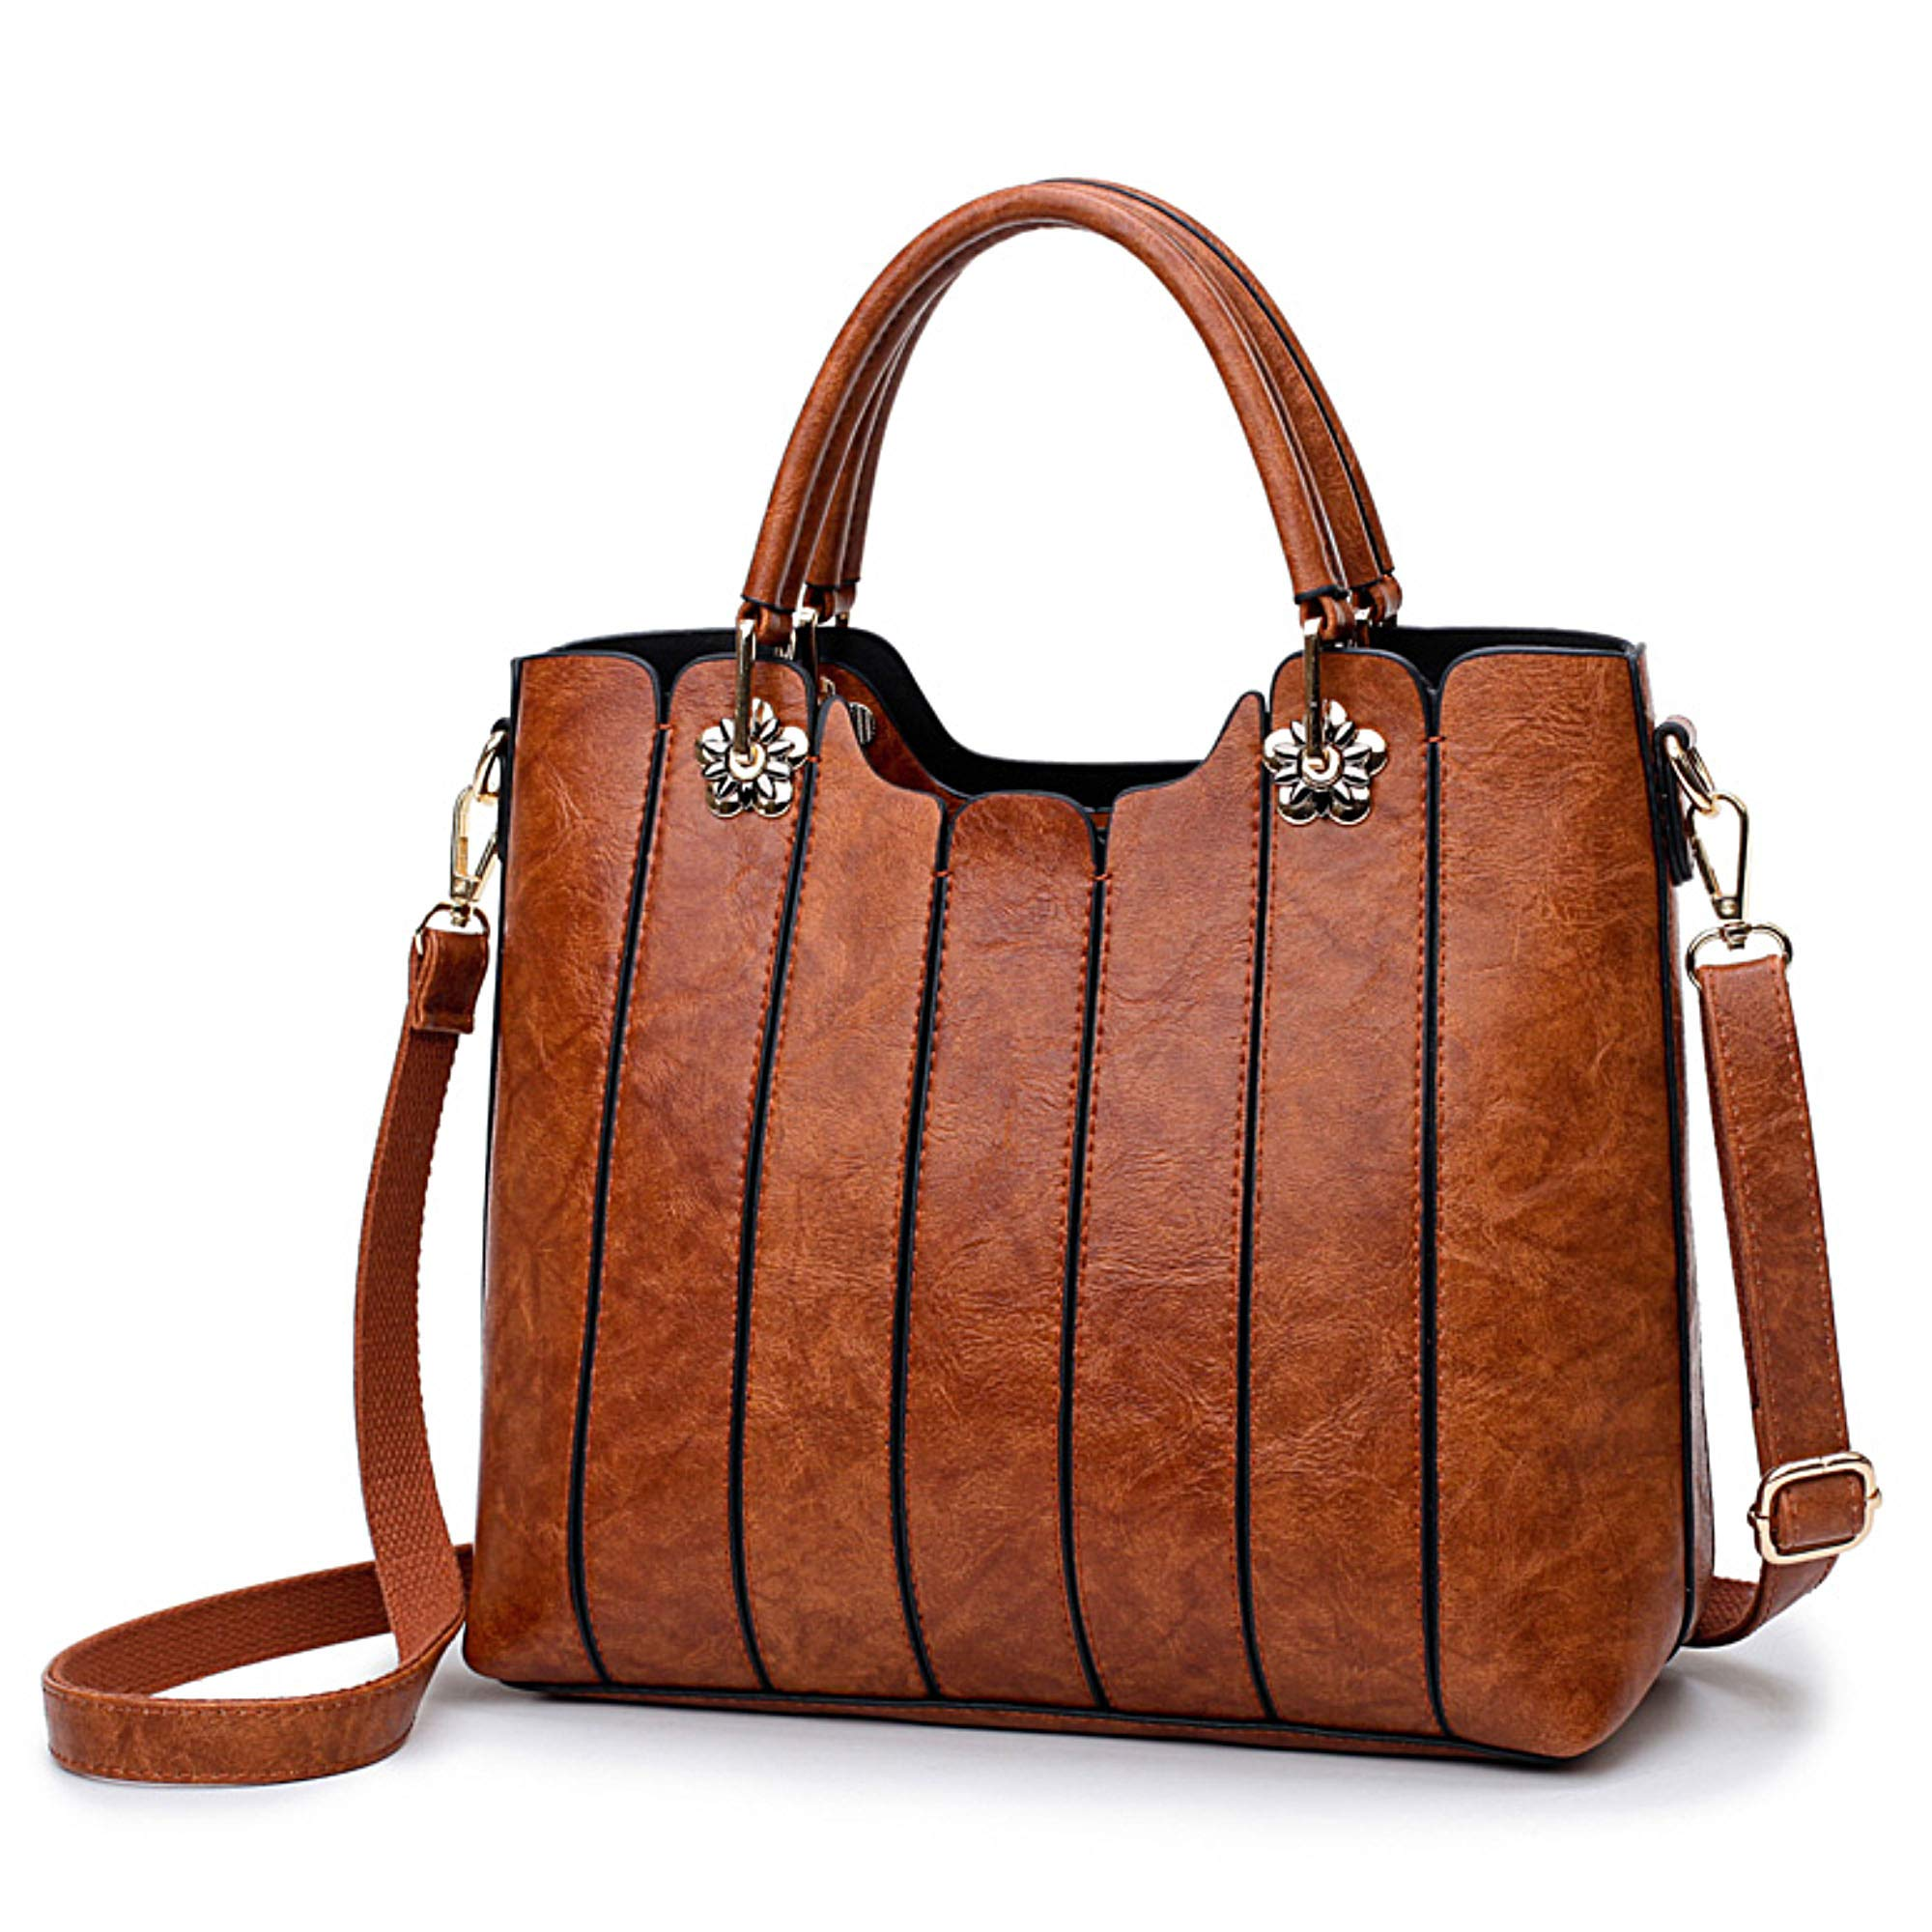 Ladies Leather Bag with Top Handles - Women Handbags and Purses by rofozzi